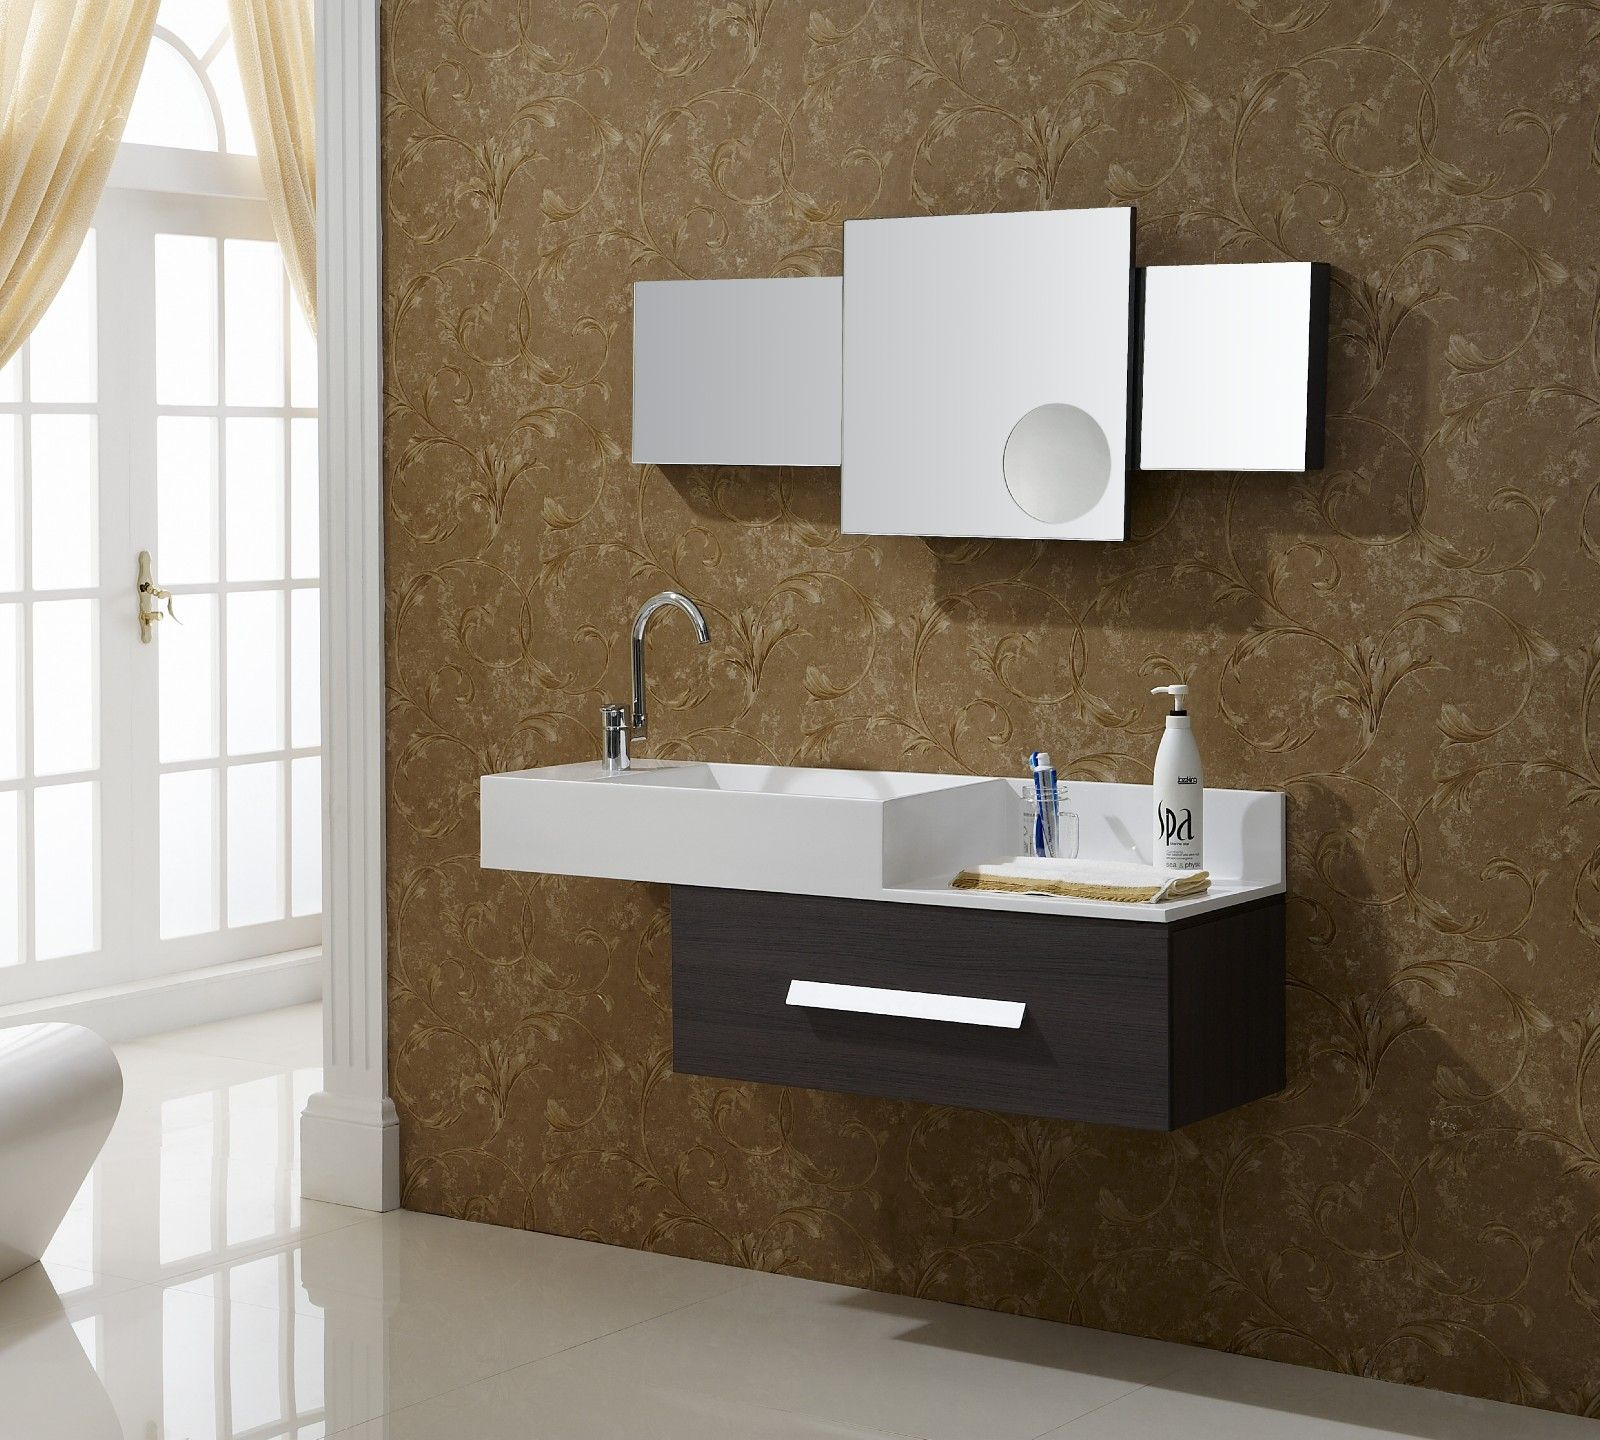 Asian bathroom vanity cabinets - Bathroom Captivating Modern Bathroom Vanities With Aviateur Wall Mount And Three Square Mirror Also Modern Floating Vanity Sink With Storage Floating